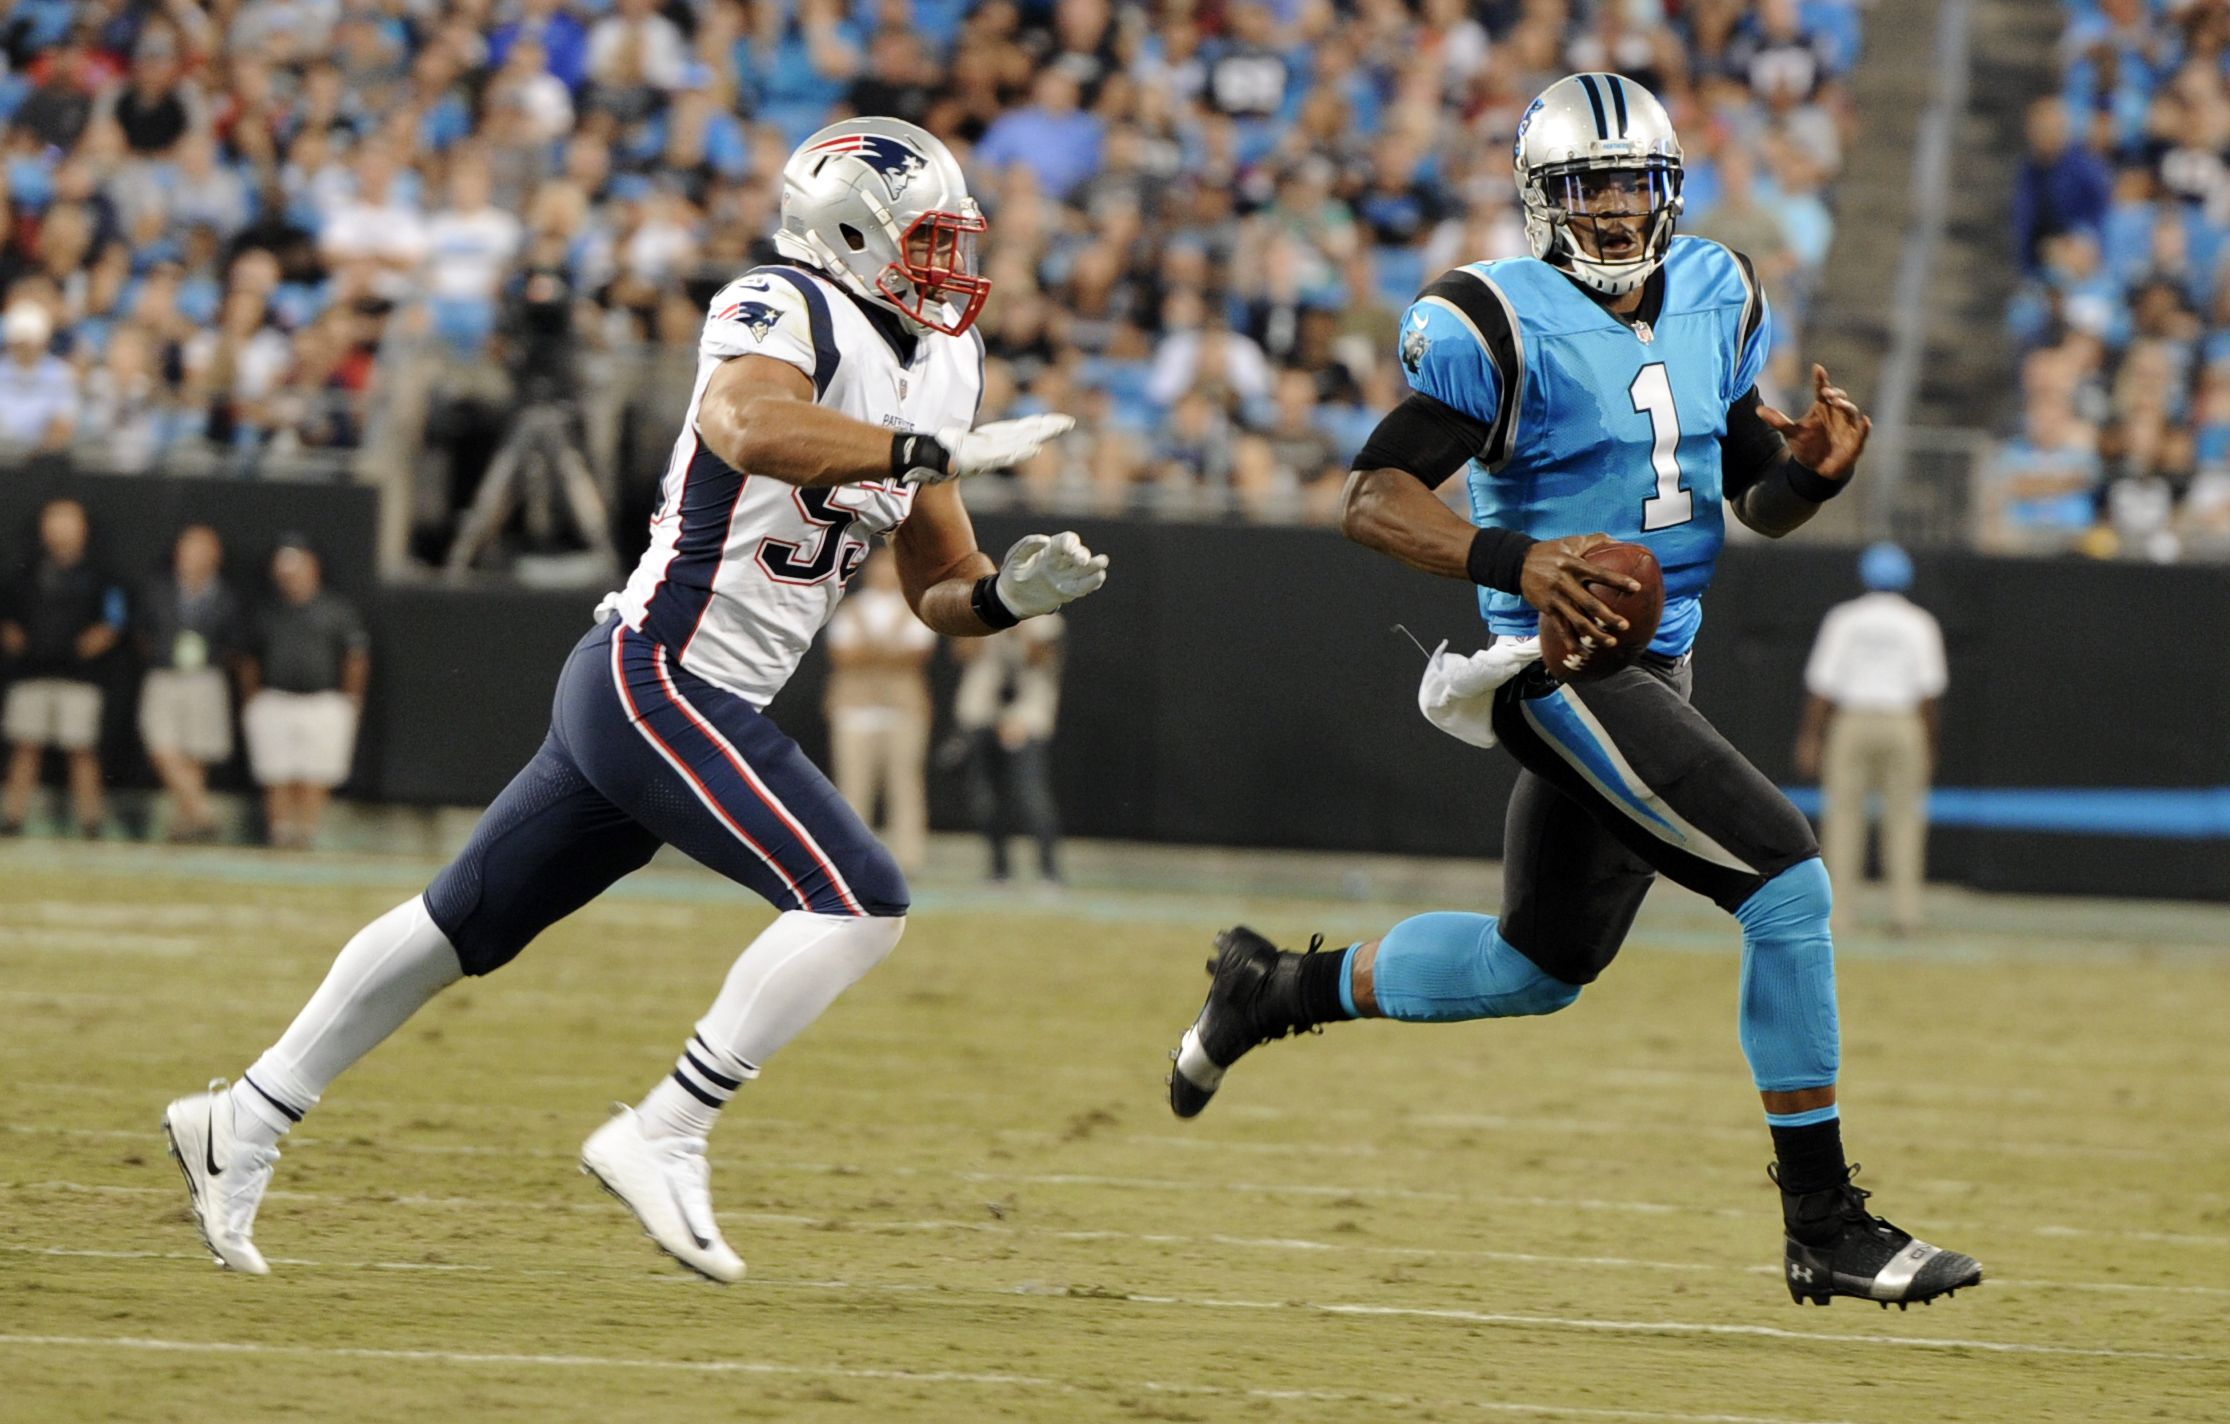 Kyle Van Noy On Cam Newton Ex Patriots Lb Says Dolphins Have Our Hands Full Sunday With Athletic Qb Masslive Com